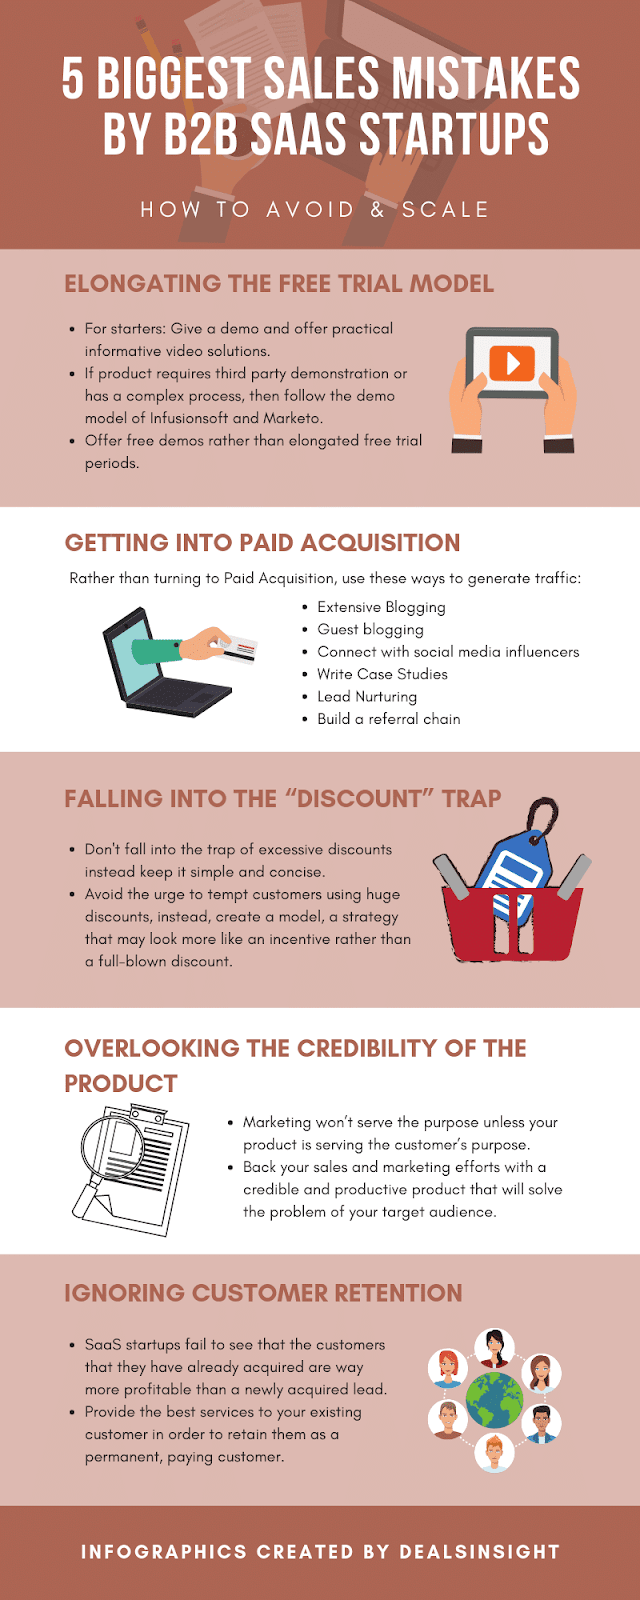 5 Biggest Sales Mistakes by B2B SaaS Startups - How to Avoid & Scale?